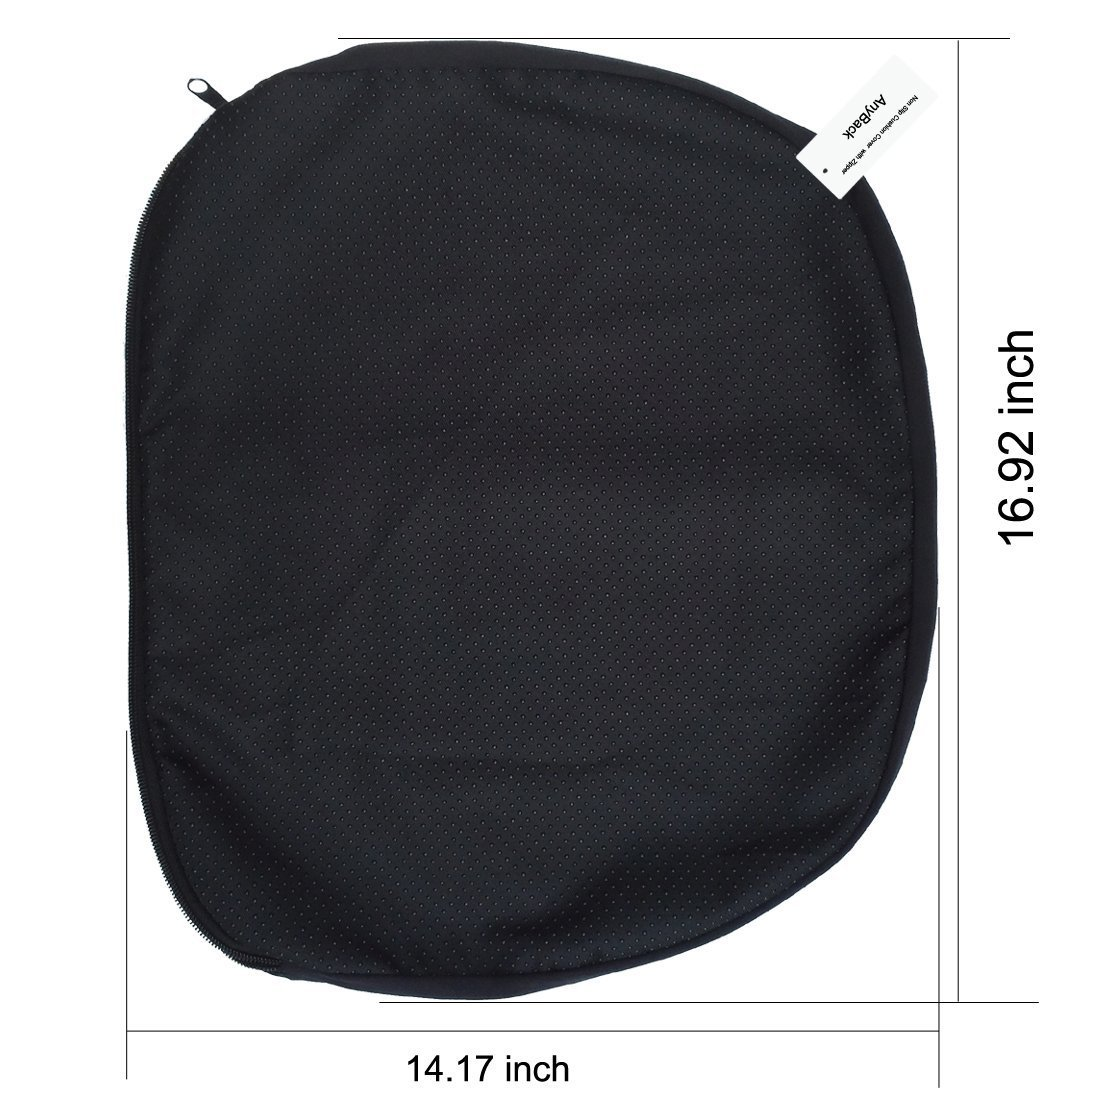 ... Non Slip Drop Dot Replacement Seat Cushion Cover 16 x 14 Perfect for  Egg Sitter Gel ... f8444cae2